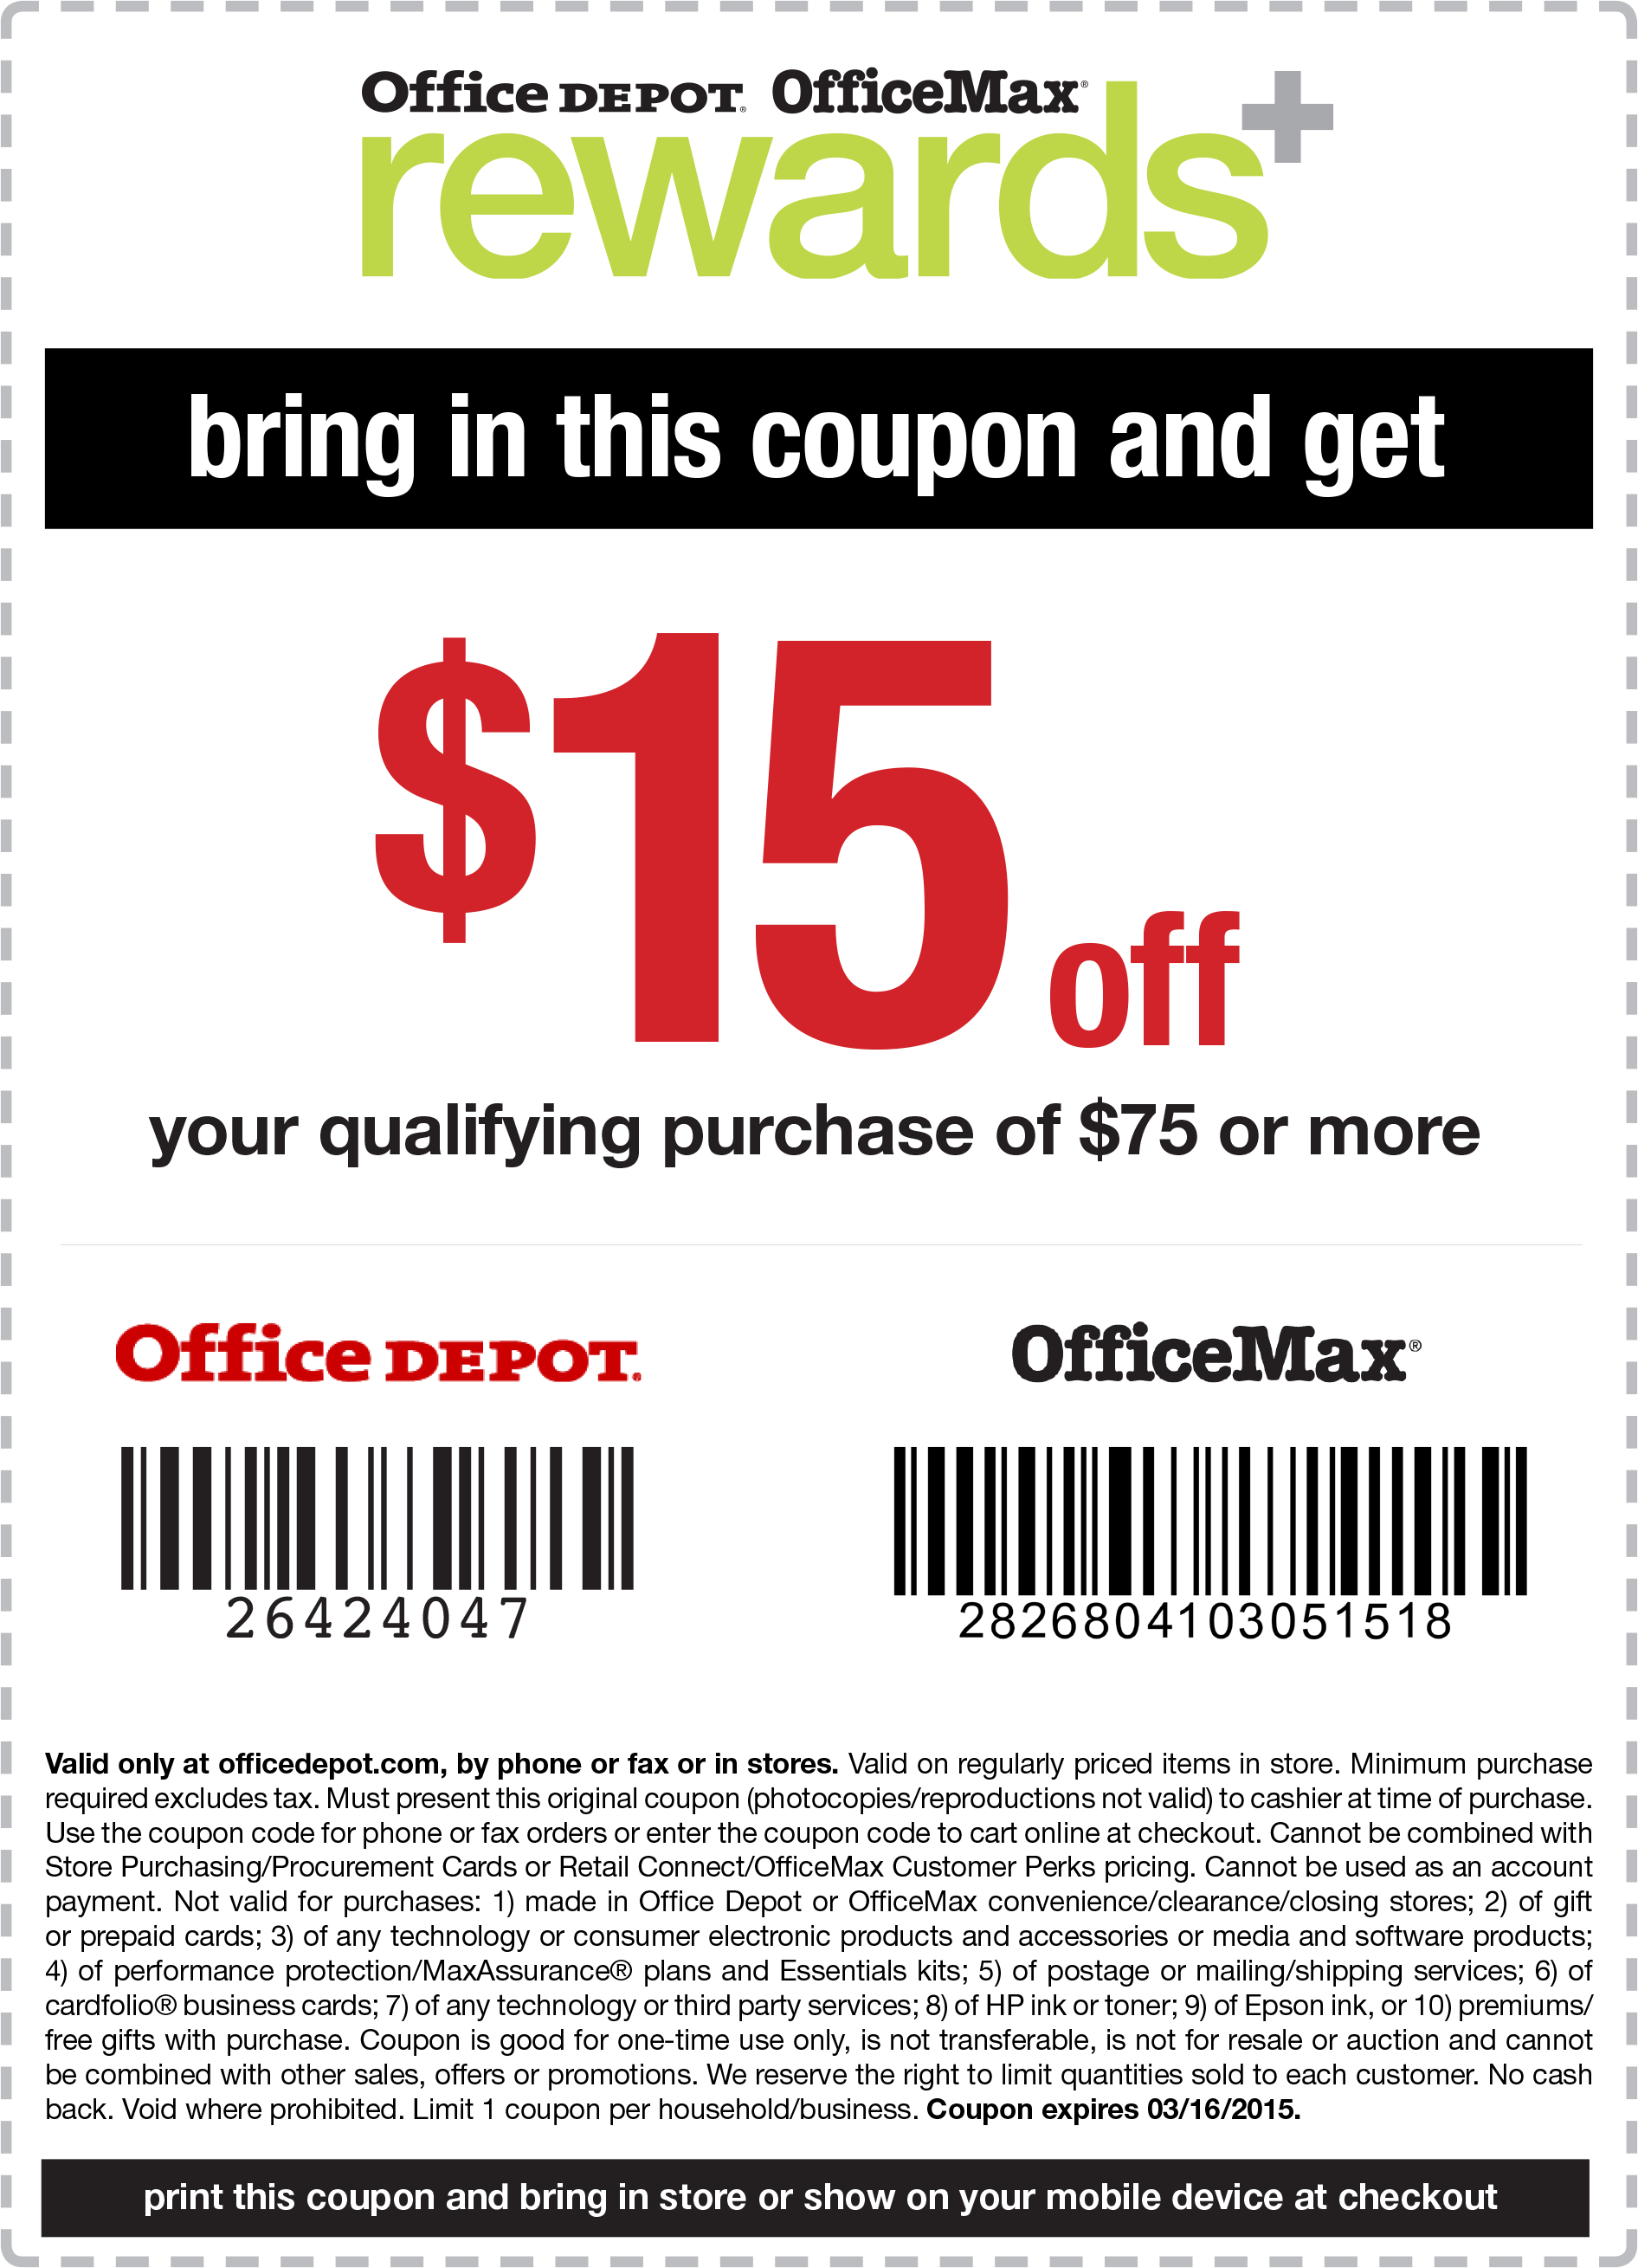 OfficeMax Coupon March 2019 $15 off $75 at Office Depot & OfficeMax, or online via promo code 26424047